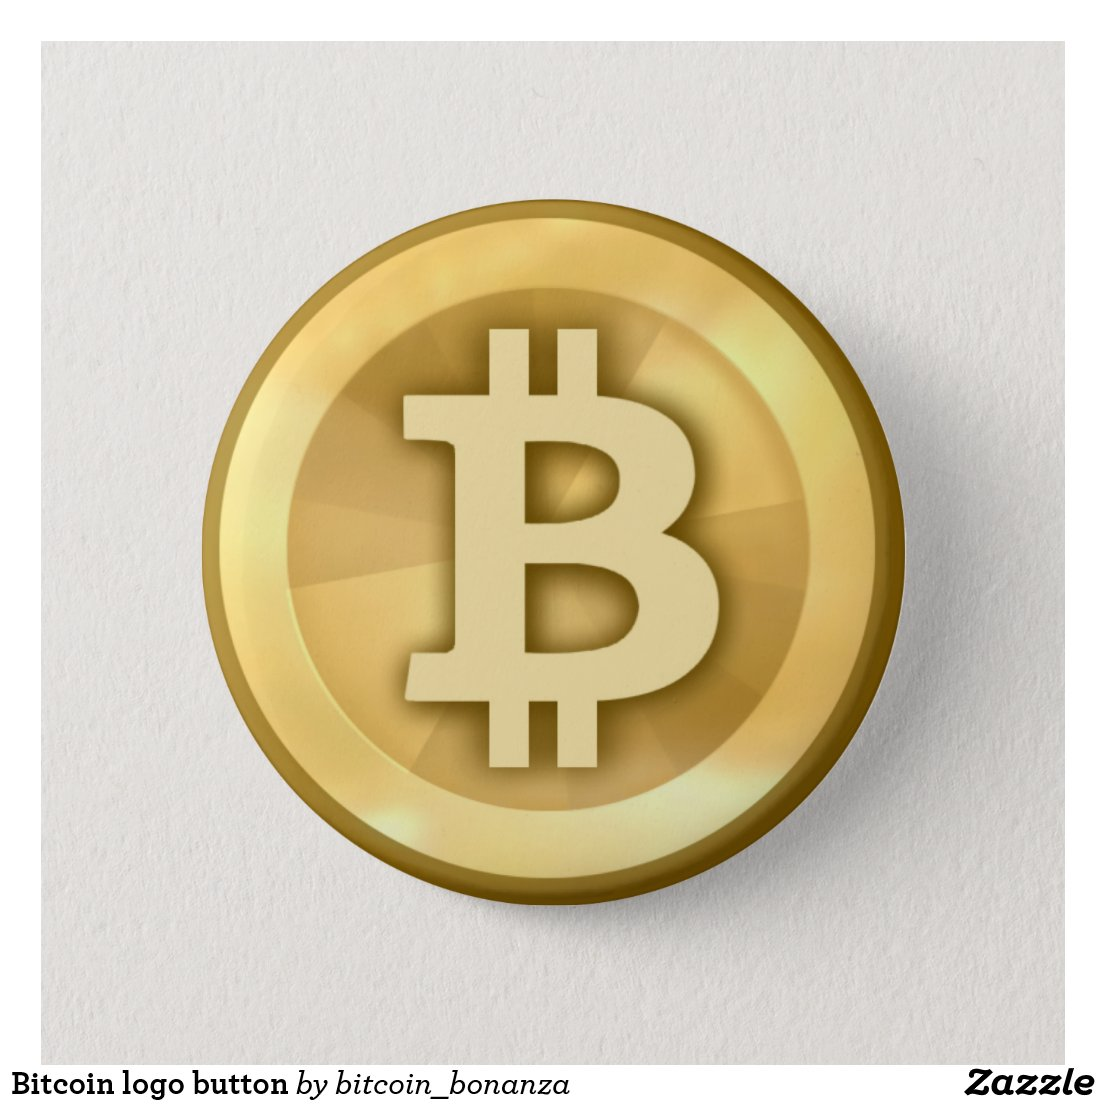 Bitcoin logo button